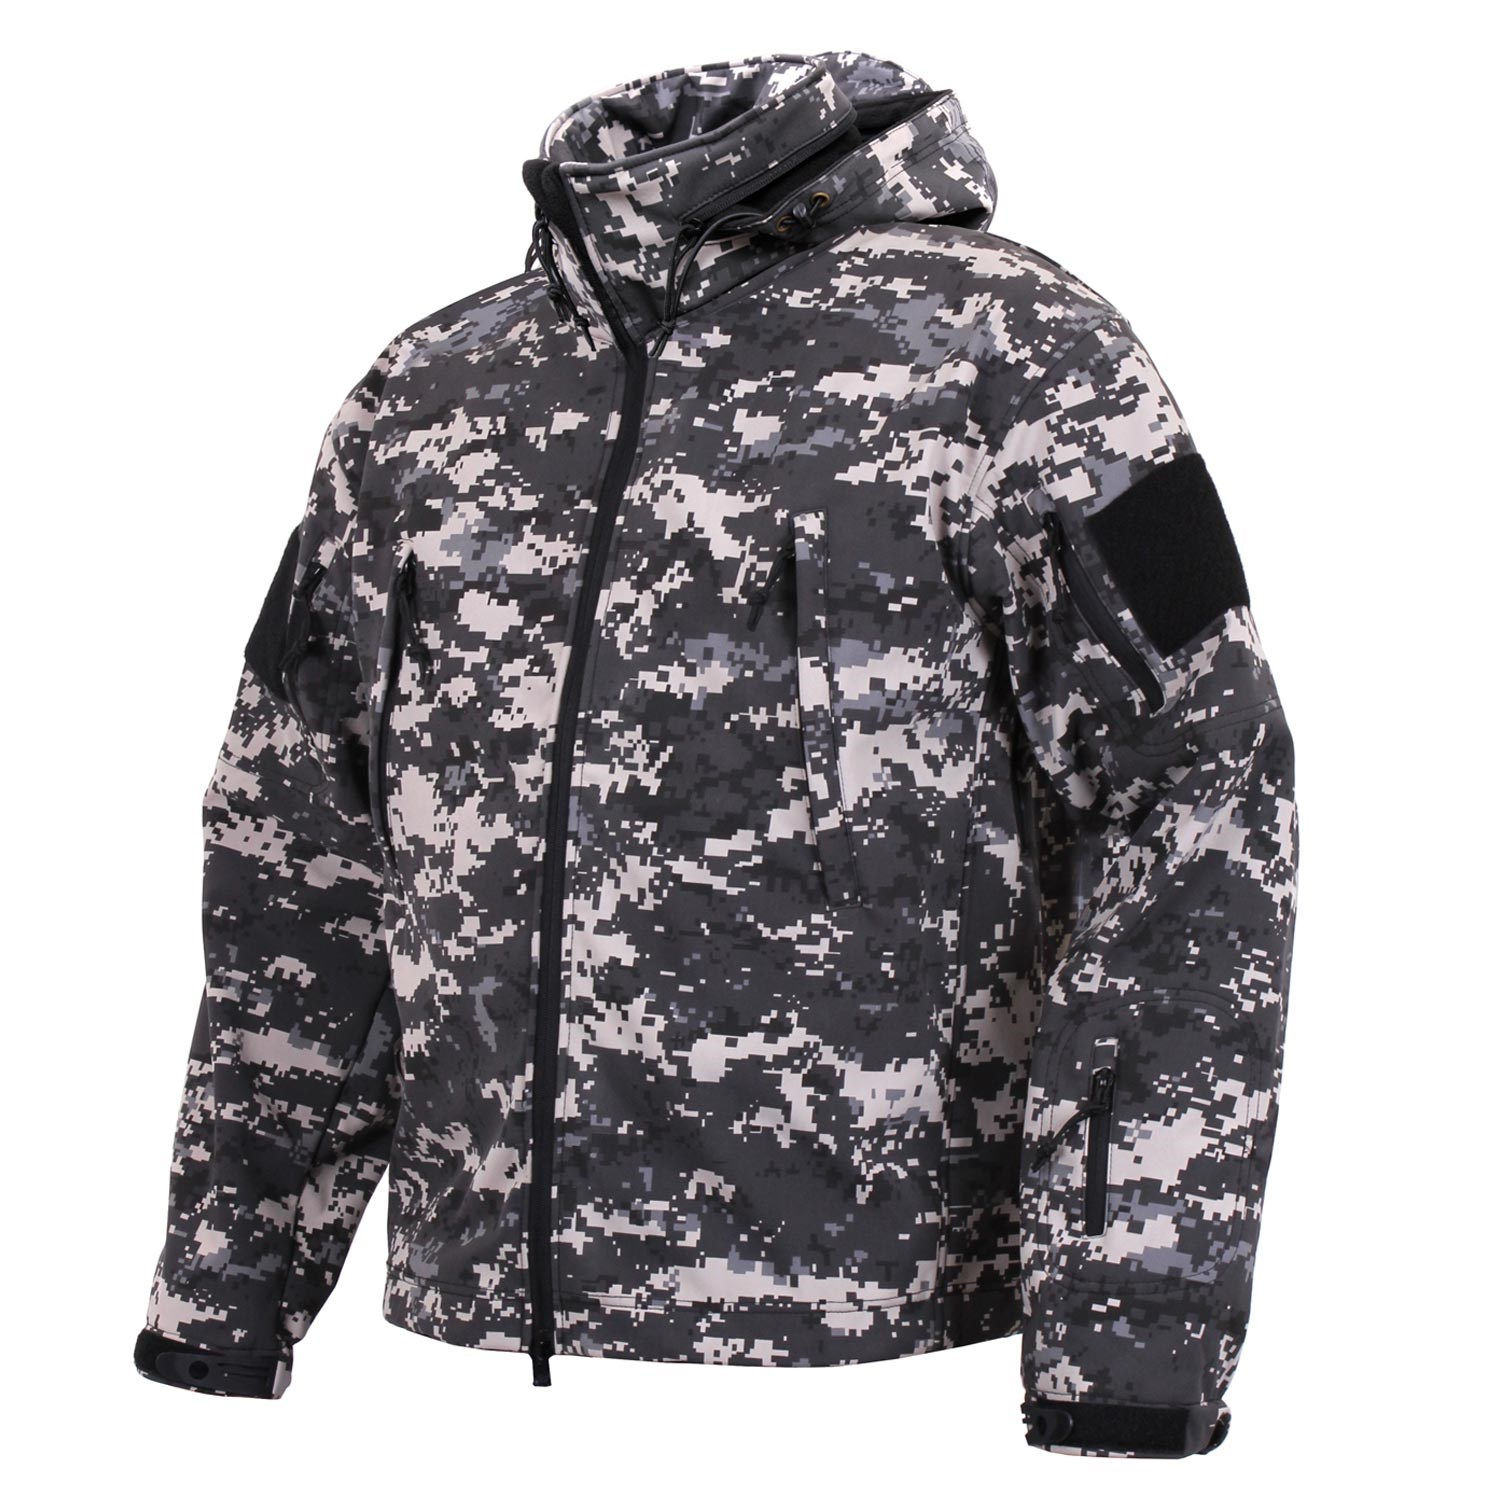 Bunda TACTICAL s kapucí softshell DIGITAL URBAN ROTHCO 98701 L-11